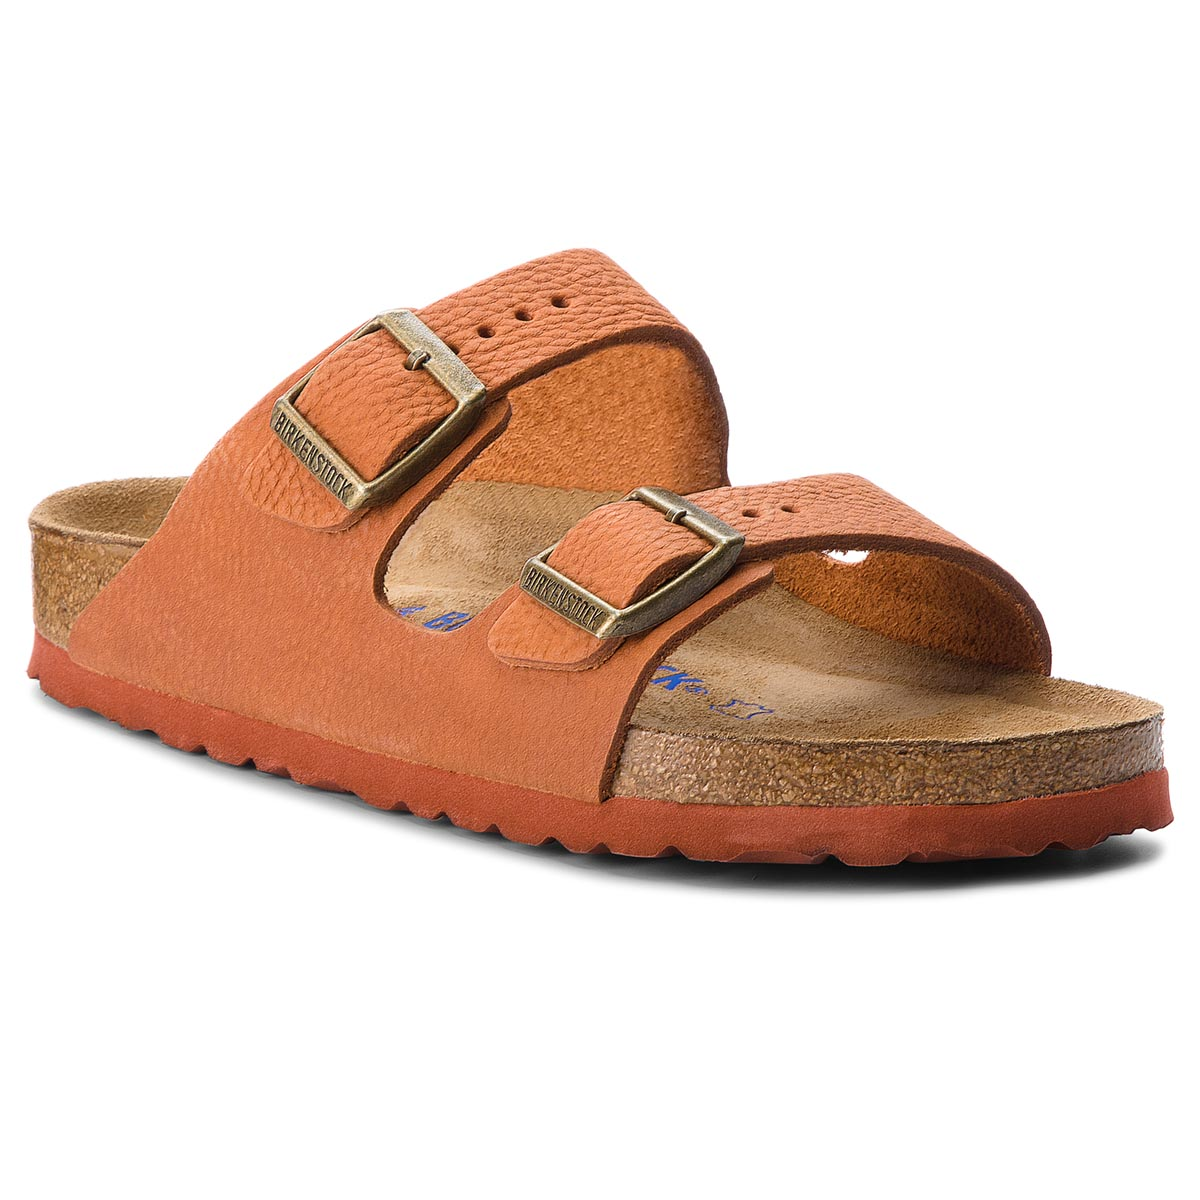 Klapki BIRKENSTOCK - Arizona Bs 1008924 Curry